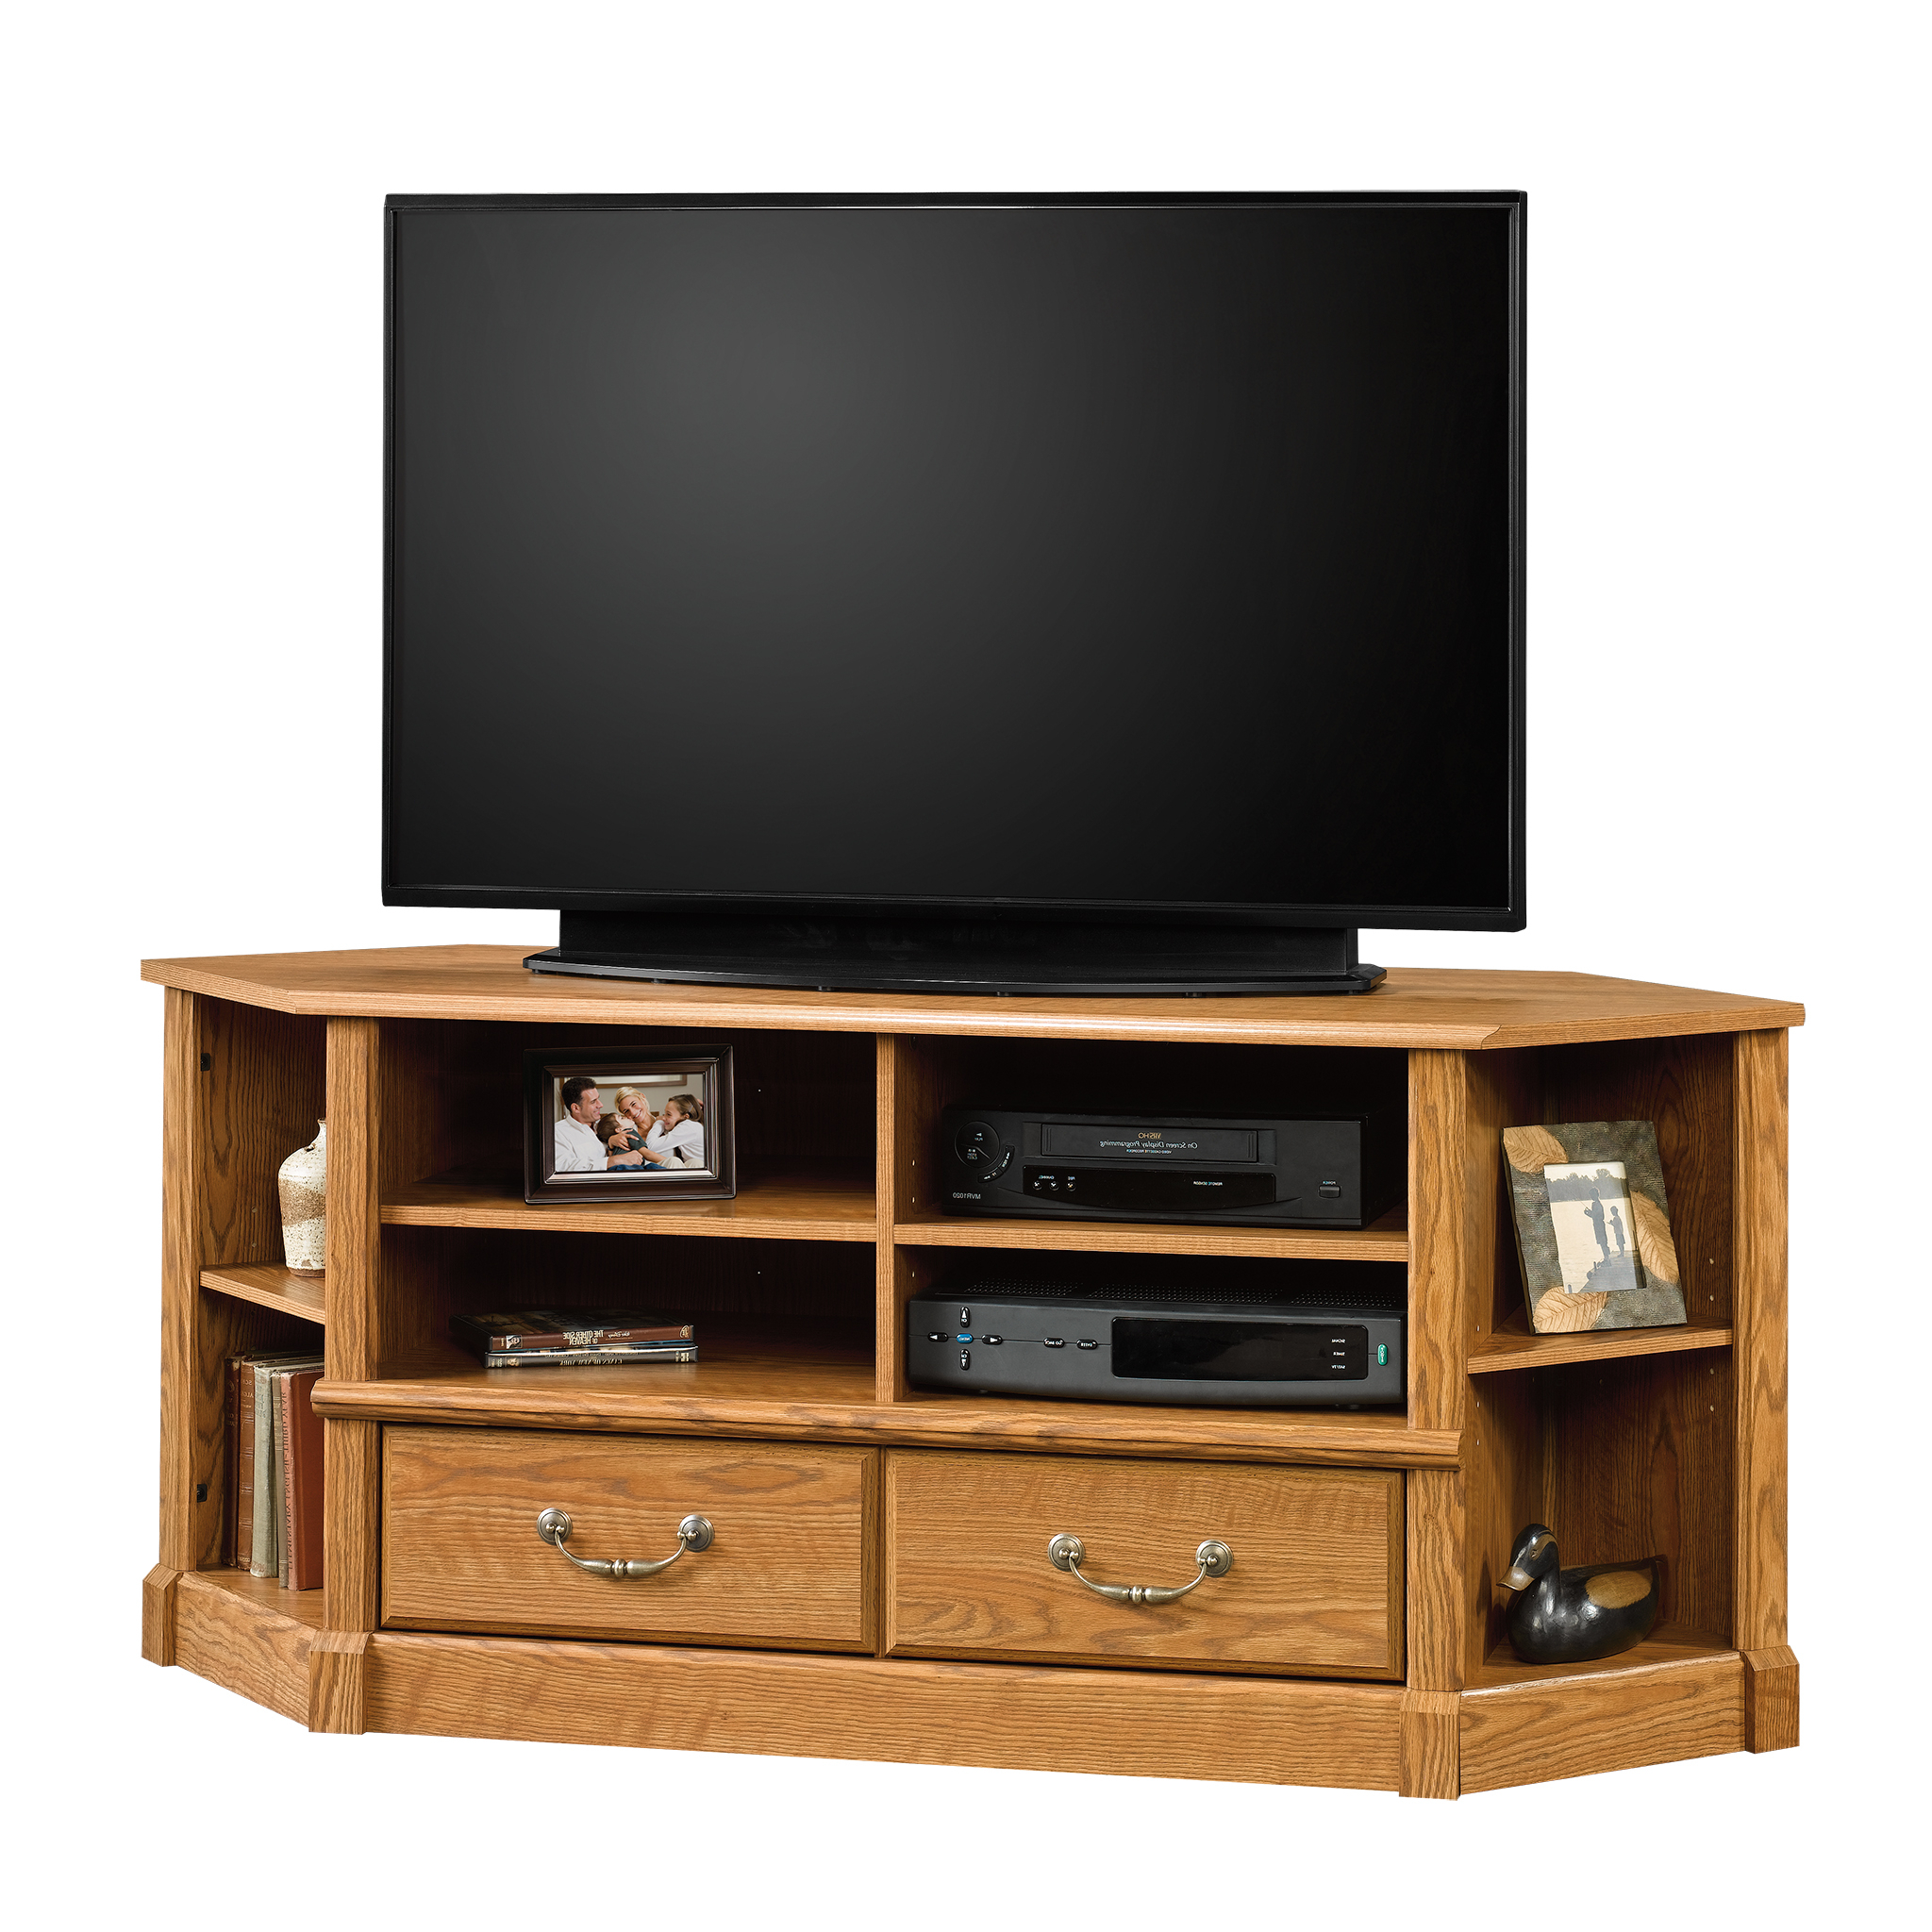 """Sauder Orchard Hills Corner Tv Stand For Tvs Up To 50 With Lansing Tv Stands For Tvs Up To 50"""" (View 9 of 20)"""